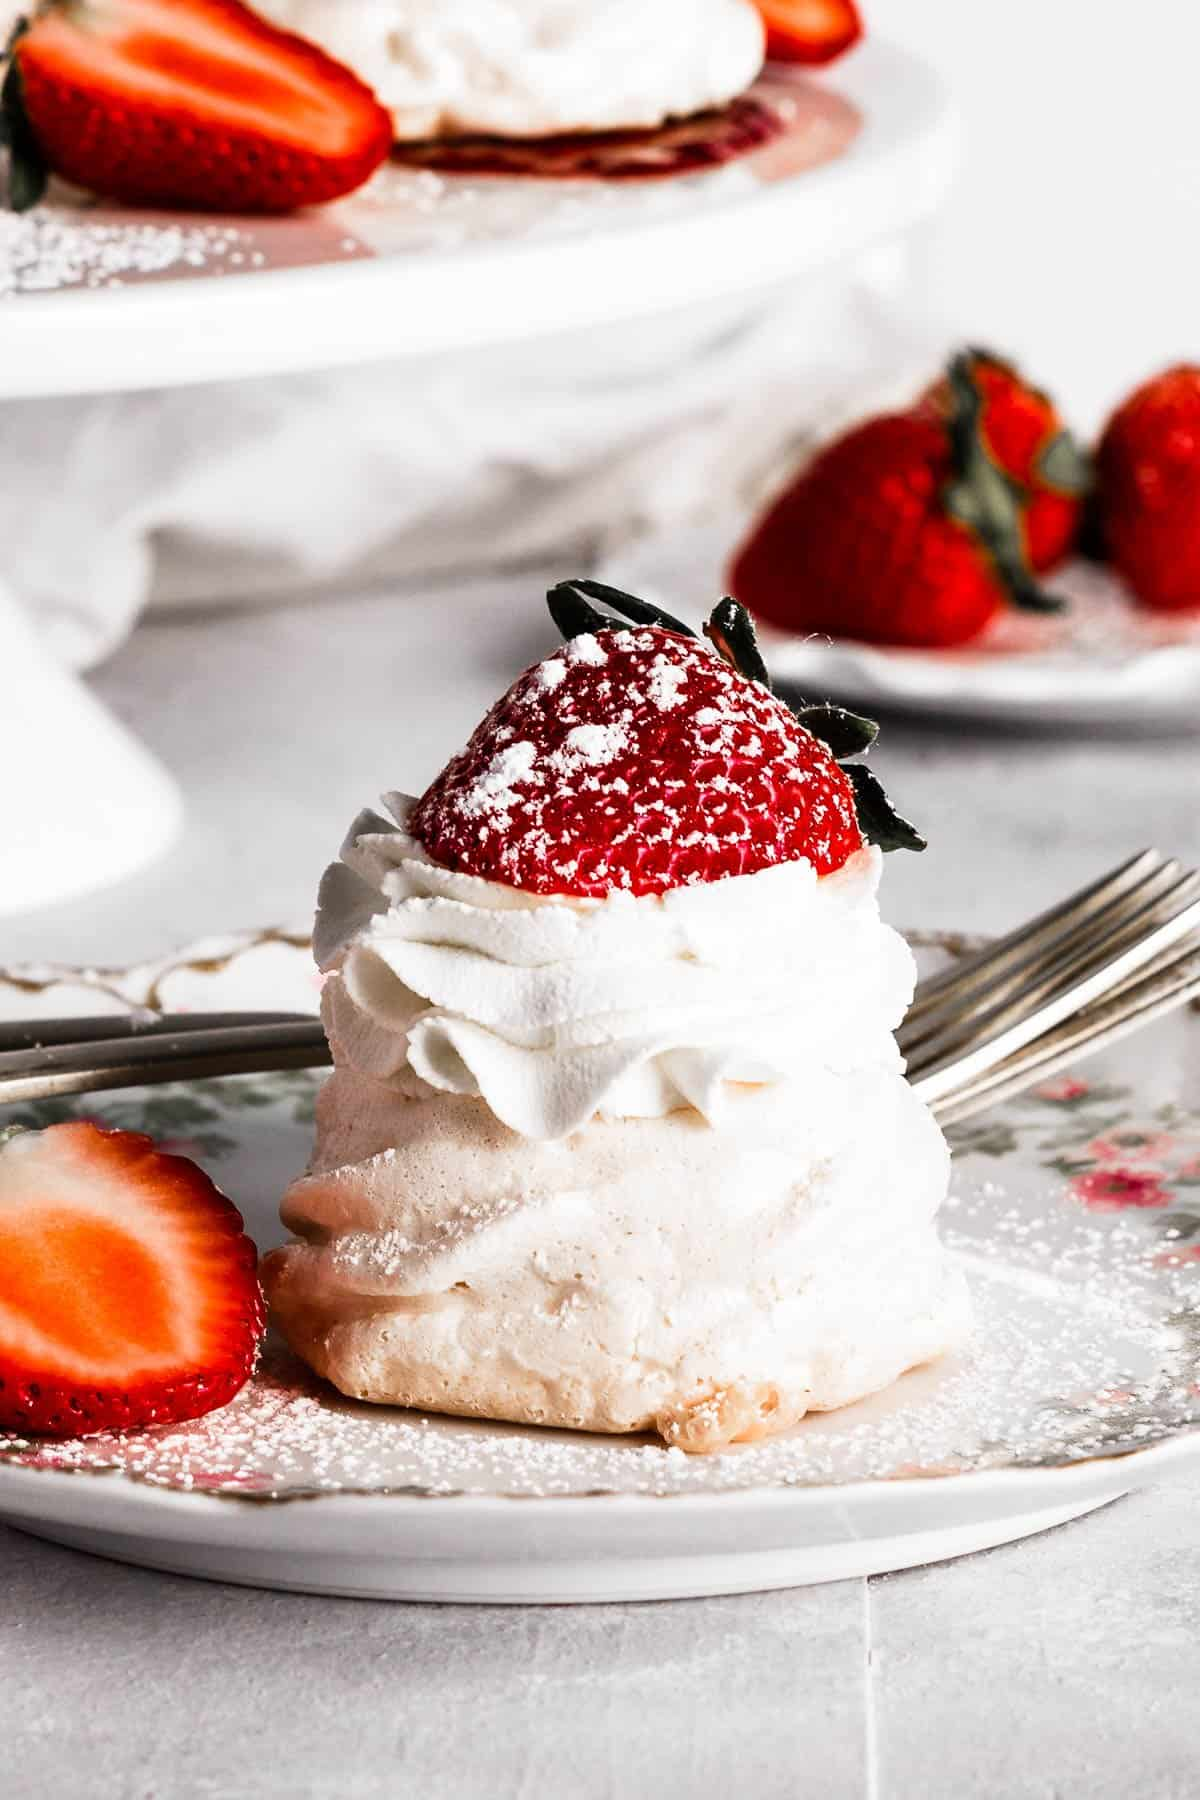 mini strawberry pavlova topped with whipped cream, strawberries, and a dust of powdered sugar